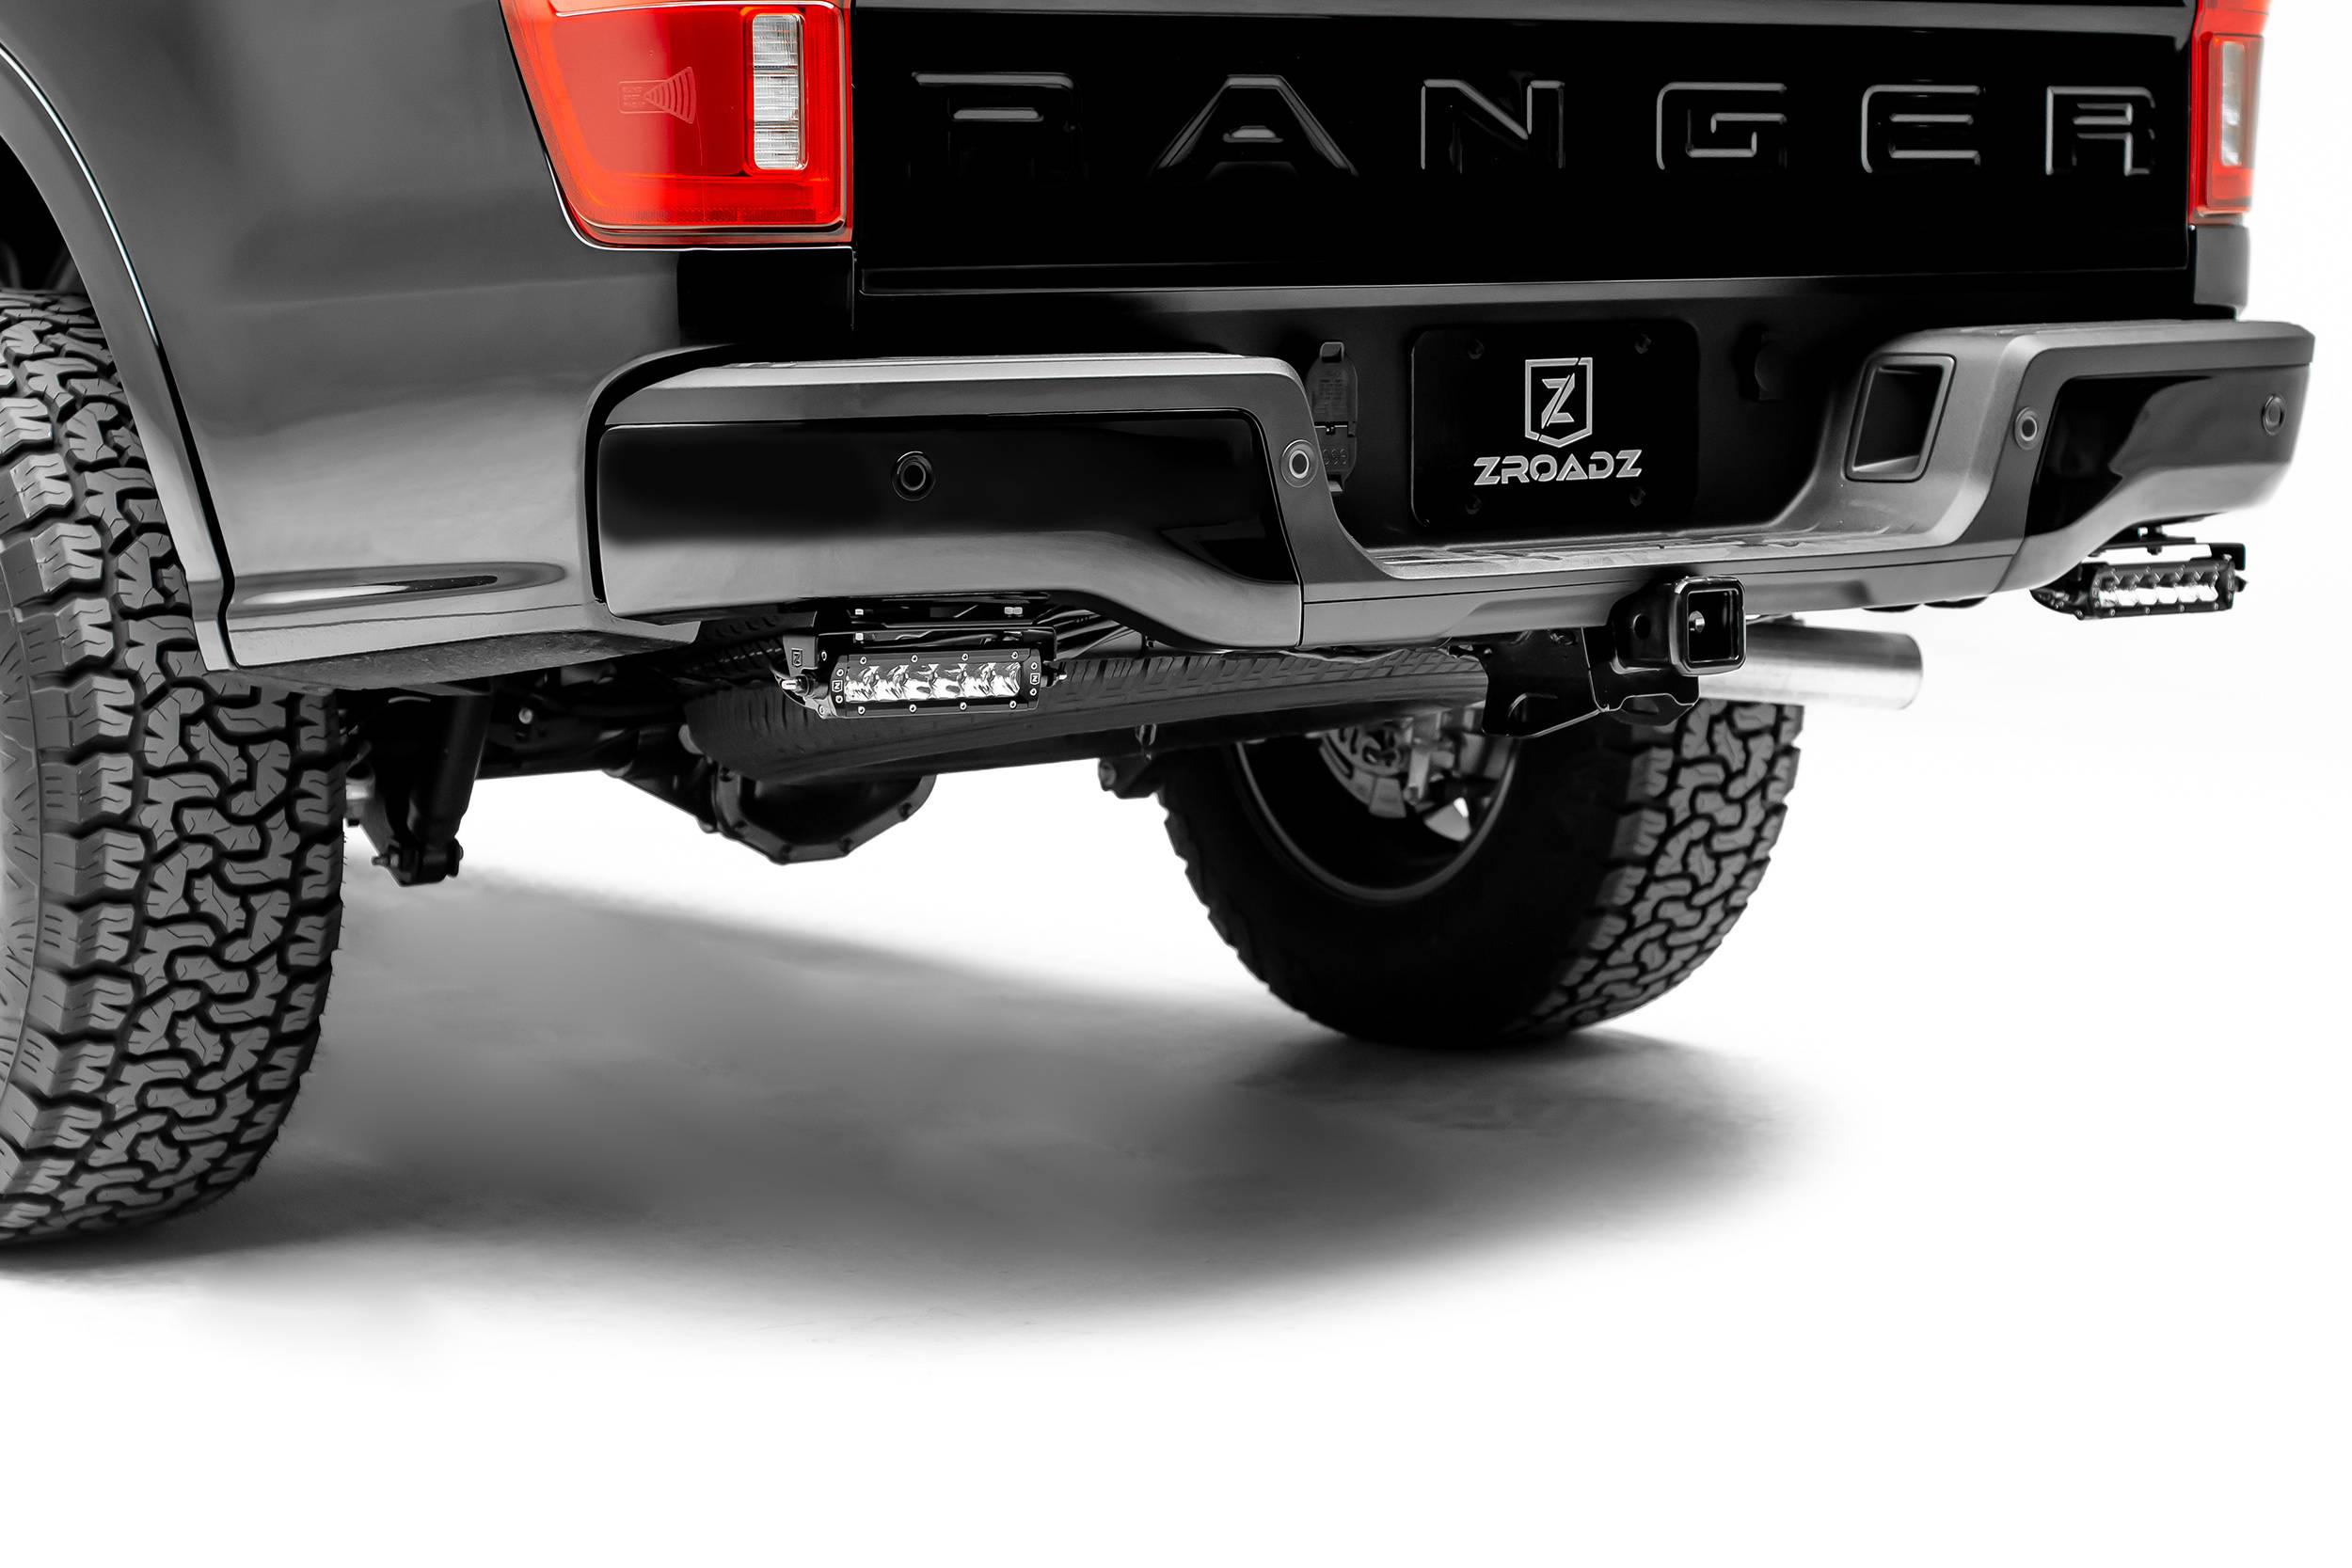 ZROADZ                                             - 2019-2021 Ford Ranger Rear Bumper LED Kit with (2) 6 Inch LED Straight Single Row Slim Light Bars - PN #Z385881-KIT